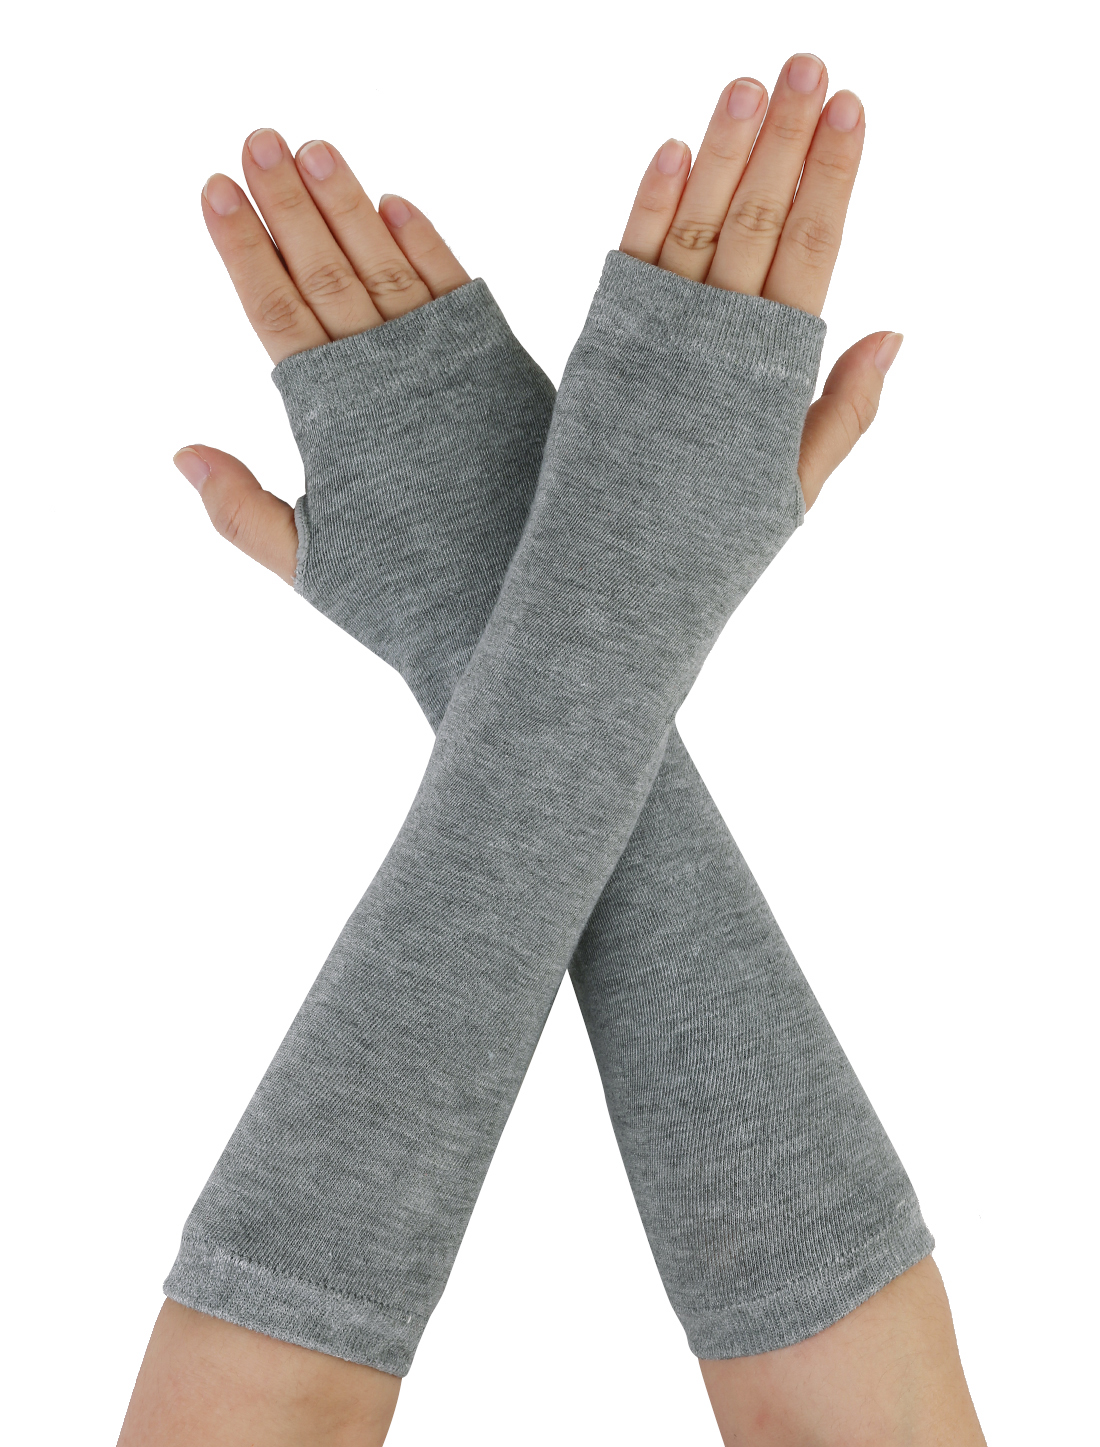 Ladies Stretchy Thumbhole Fingerless Casual Arm Warmers Gloves Pair Gray